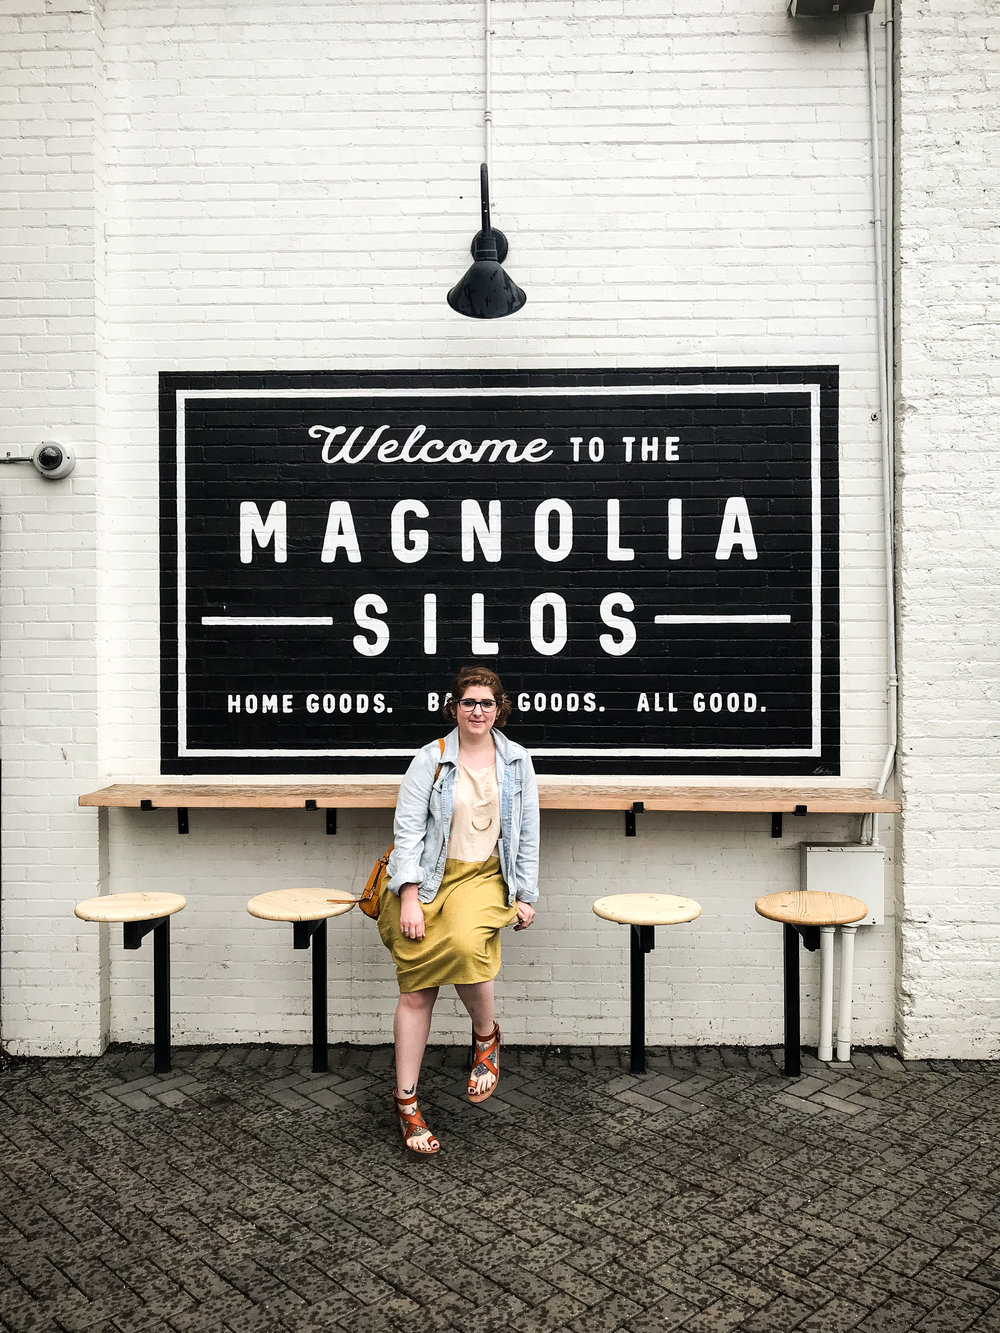 Waco, TX - Magnolia Texas - Visting Magnolia - Waco Travel Blog